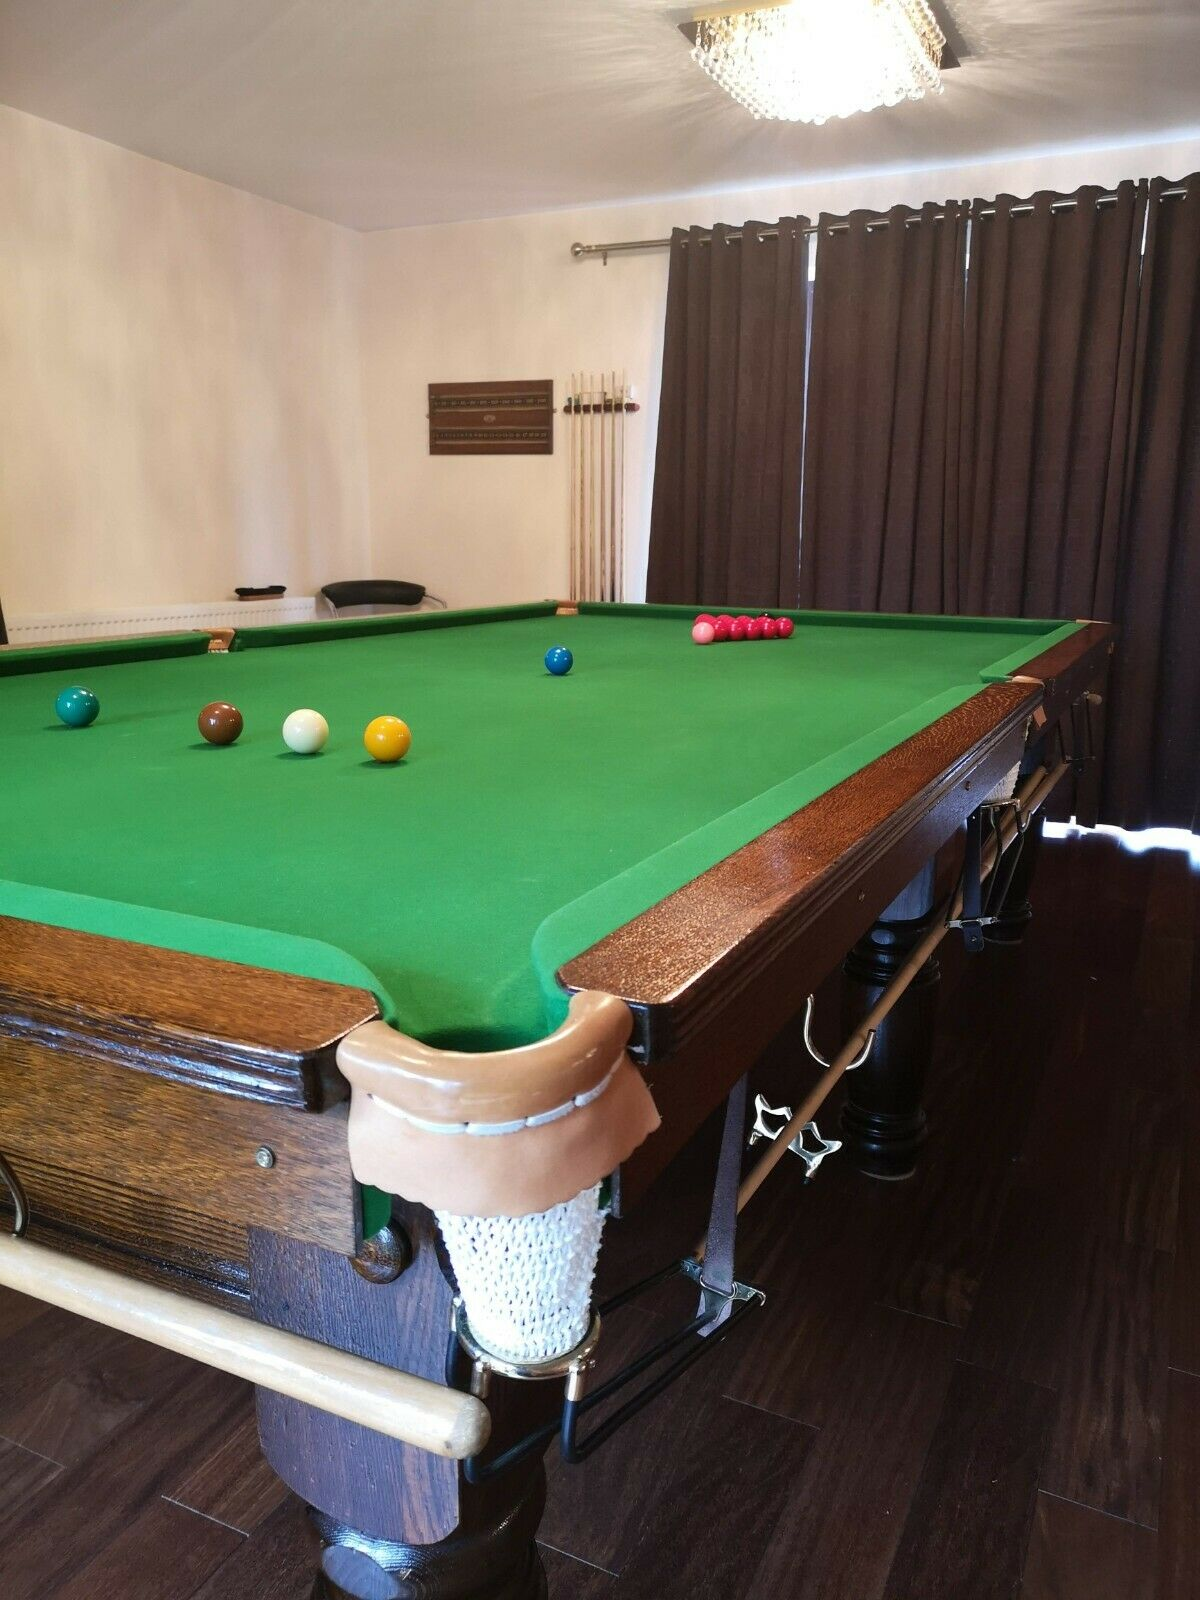 10ft Snooker Table with Balls,Cues and Scoreboard